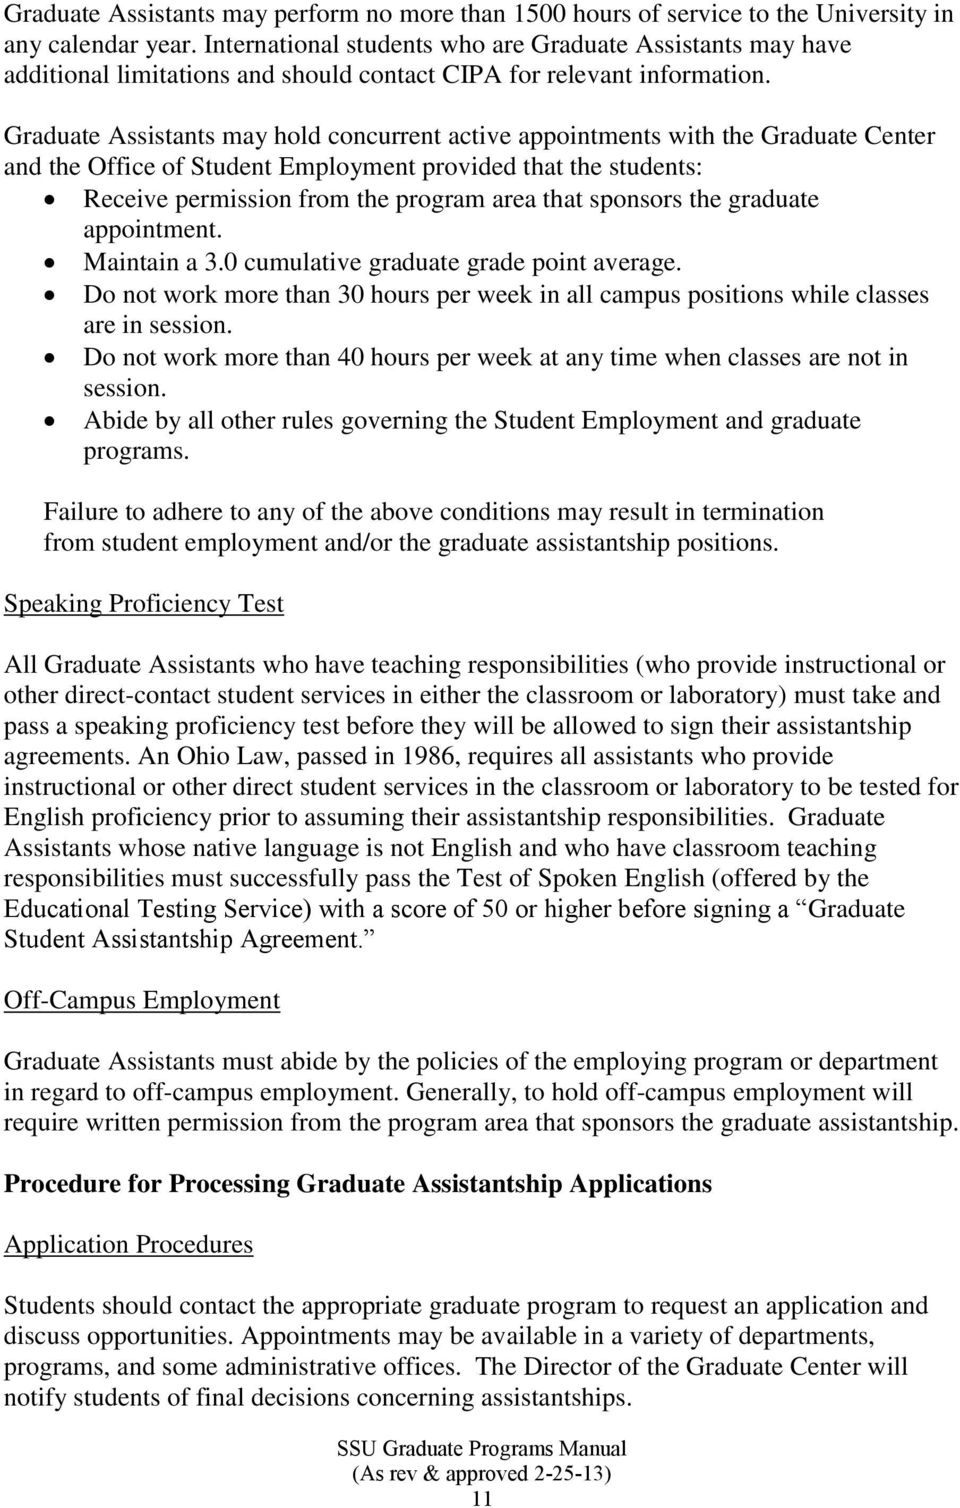 Graduate Assistants may hold concurrent active appointments with the Graduate Center and the Office of Student Employment provided that the students: Receive permission from the program area that